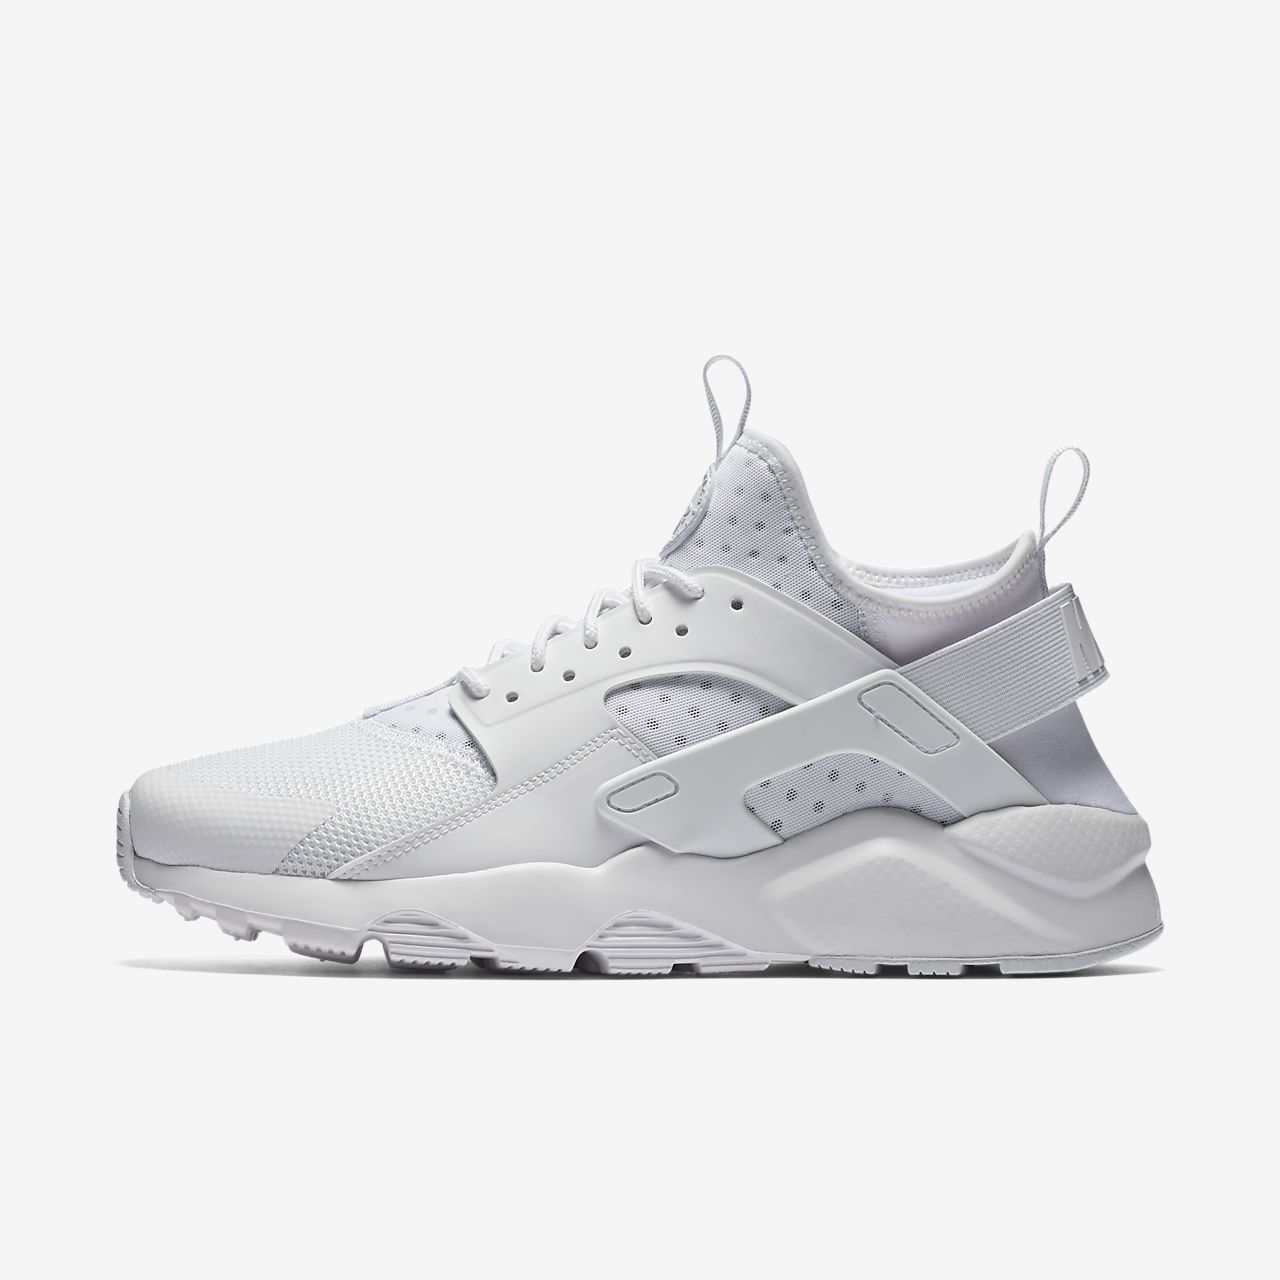 low priced 55917 58c4c ... Calzado para hombre Nike Air Huarache Ultra